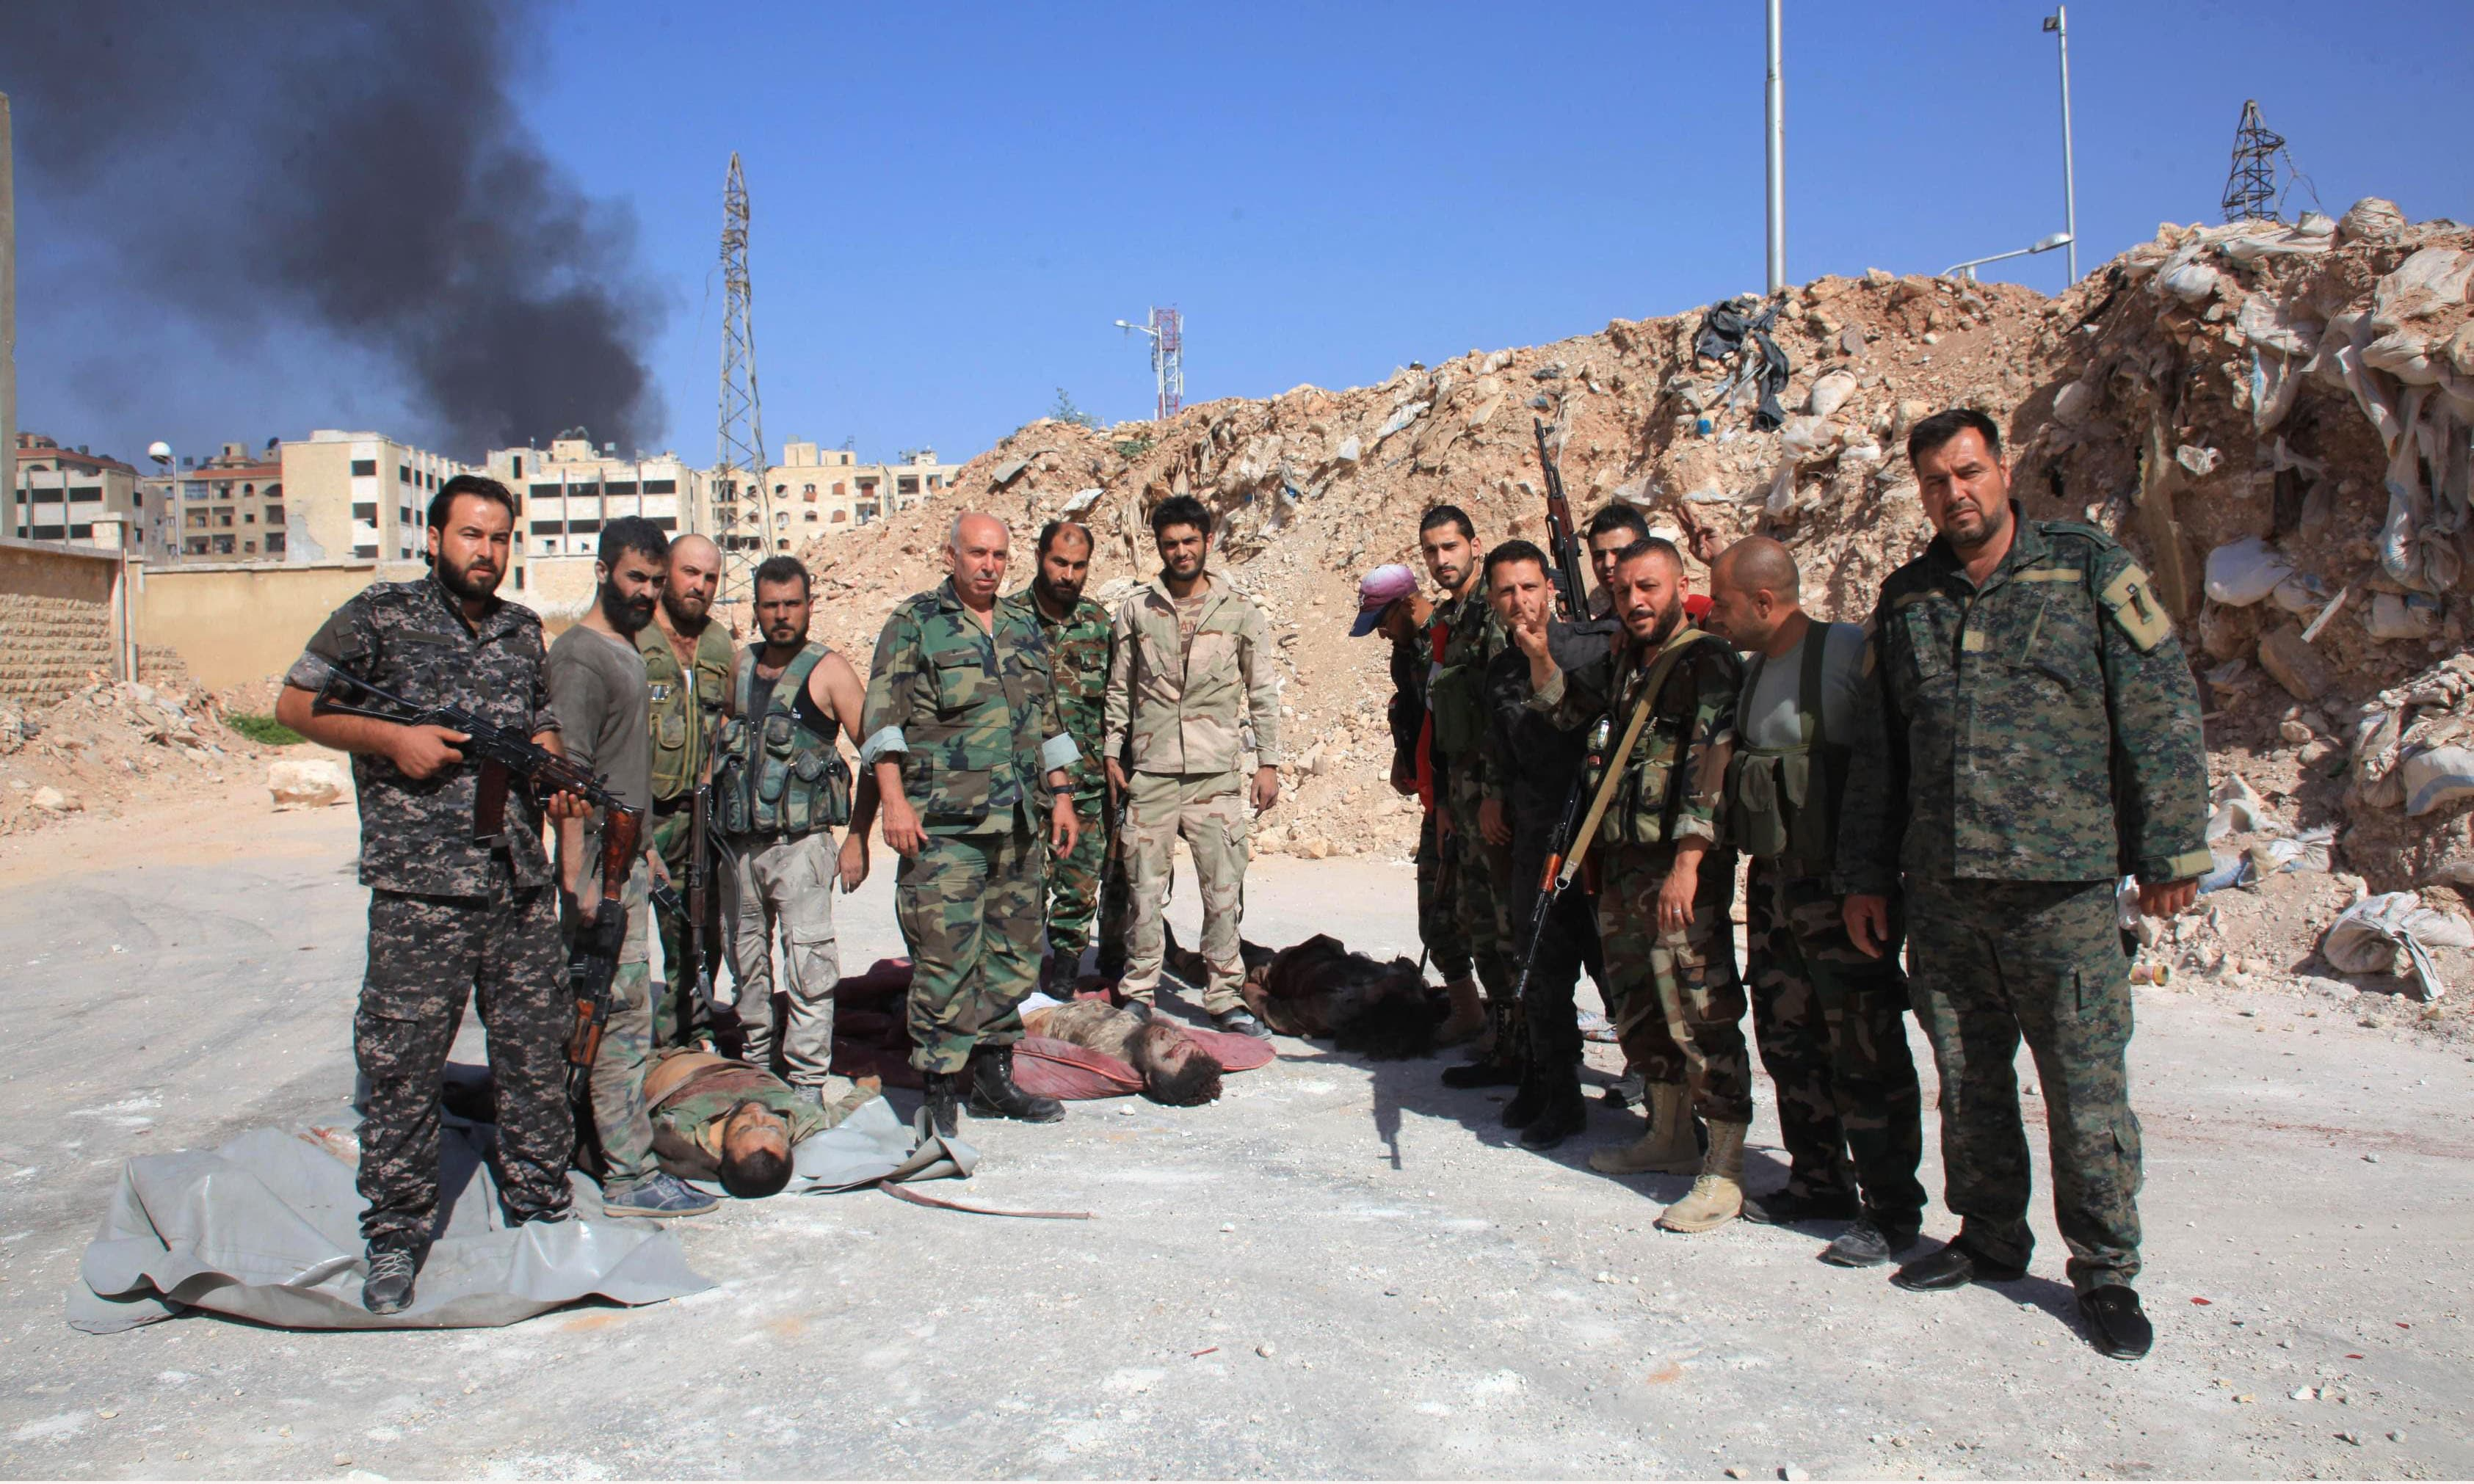 Soldiers from the Syrian government forces pose for a photo next to bodies reportedly of Islamic State (IS) group fighters in the northern Syrian city of Aleppo. —AFP